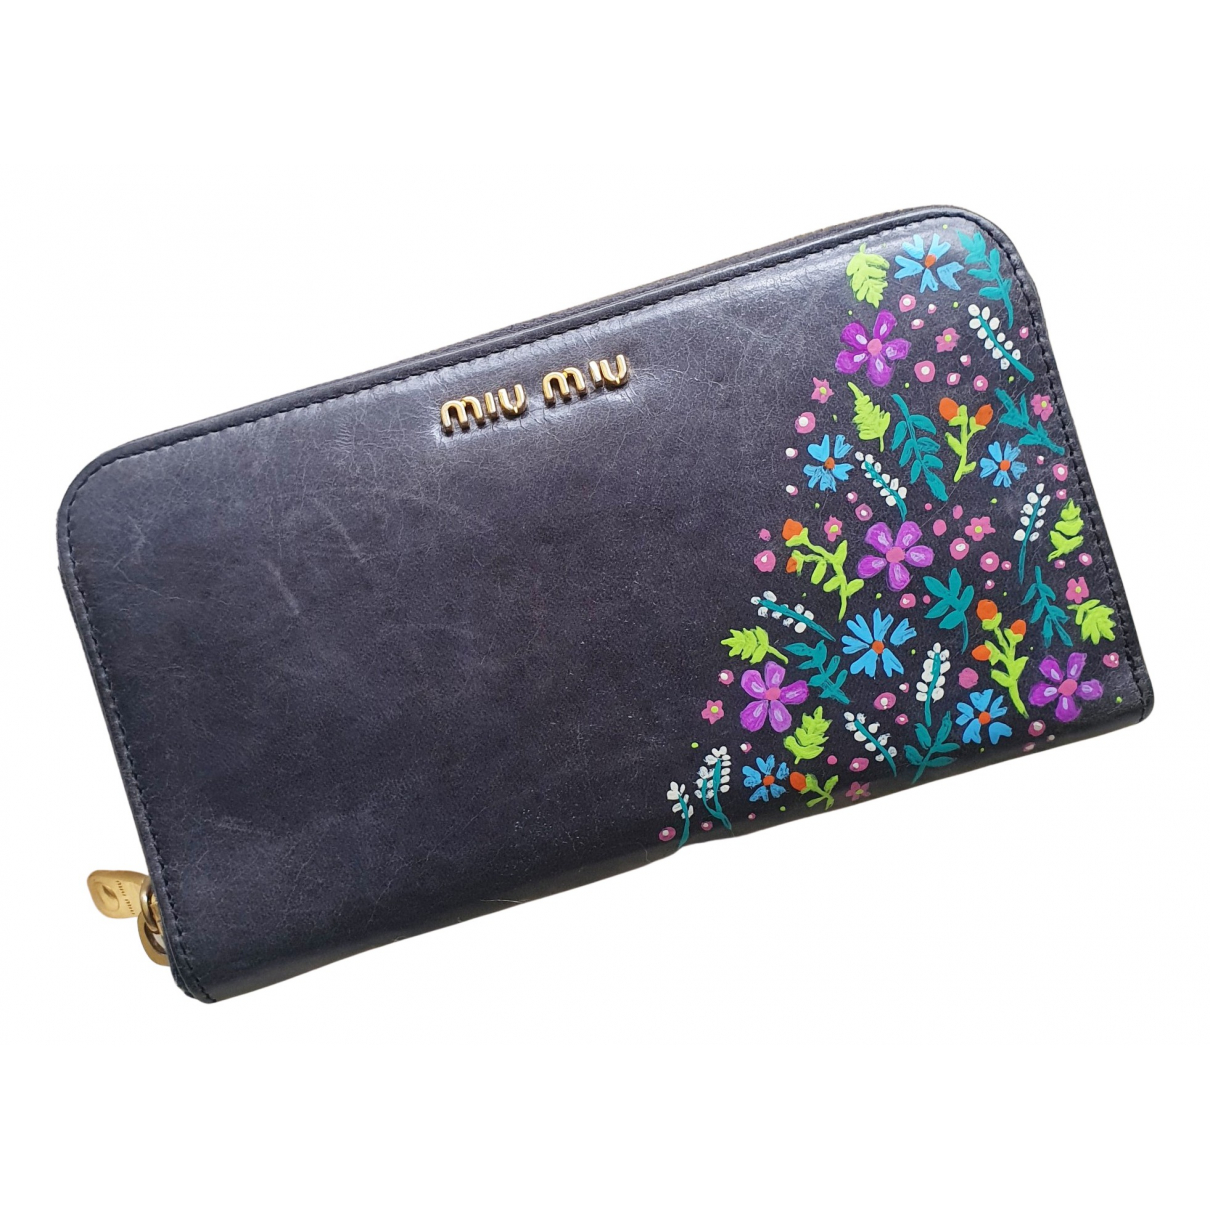 Miu Miu N Grey Leather wallet for Women N